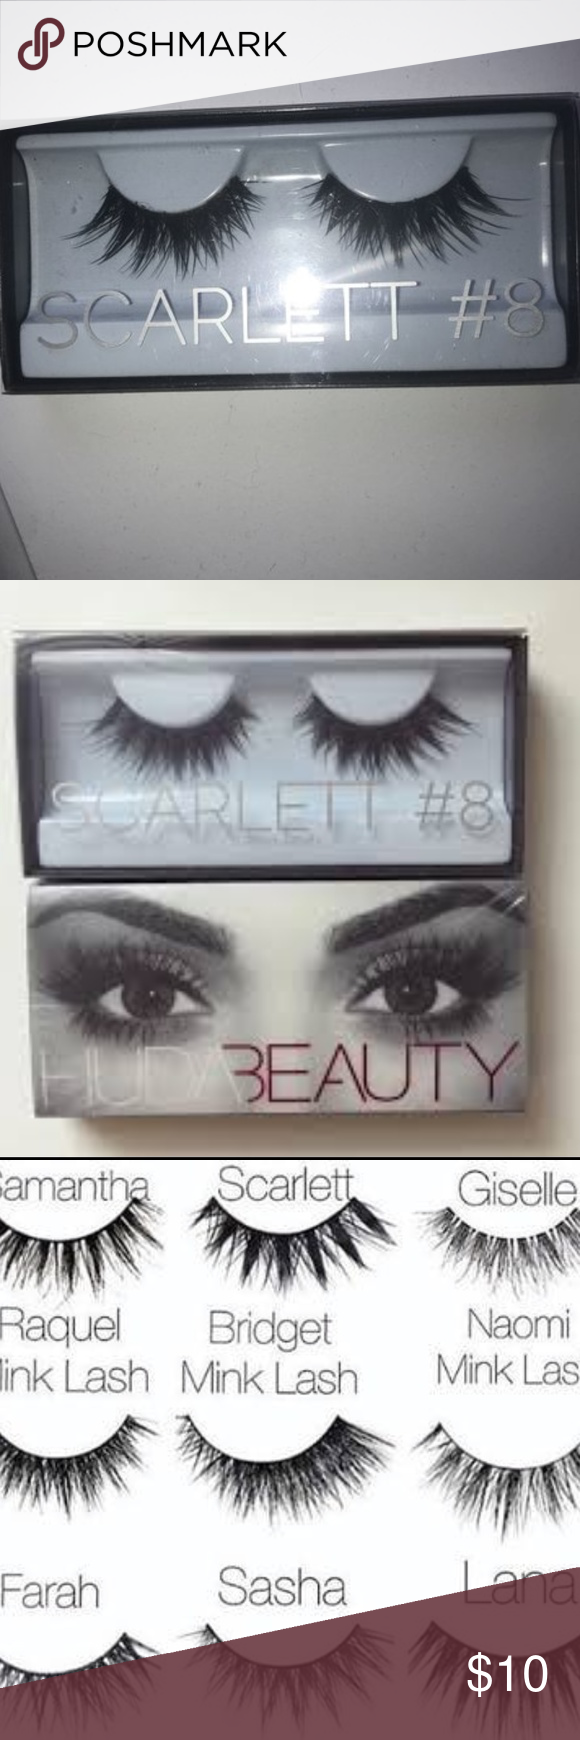 06640f05cb9 HUDA Beauty Classic False Lashes- Scarlett # 8 New, used only once as a